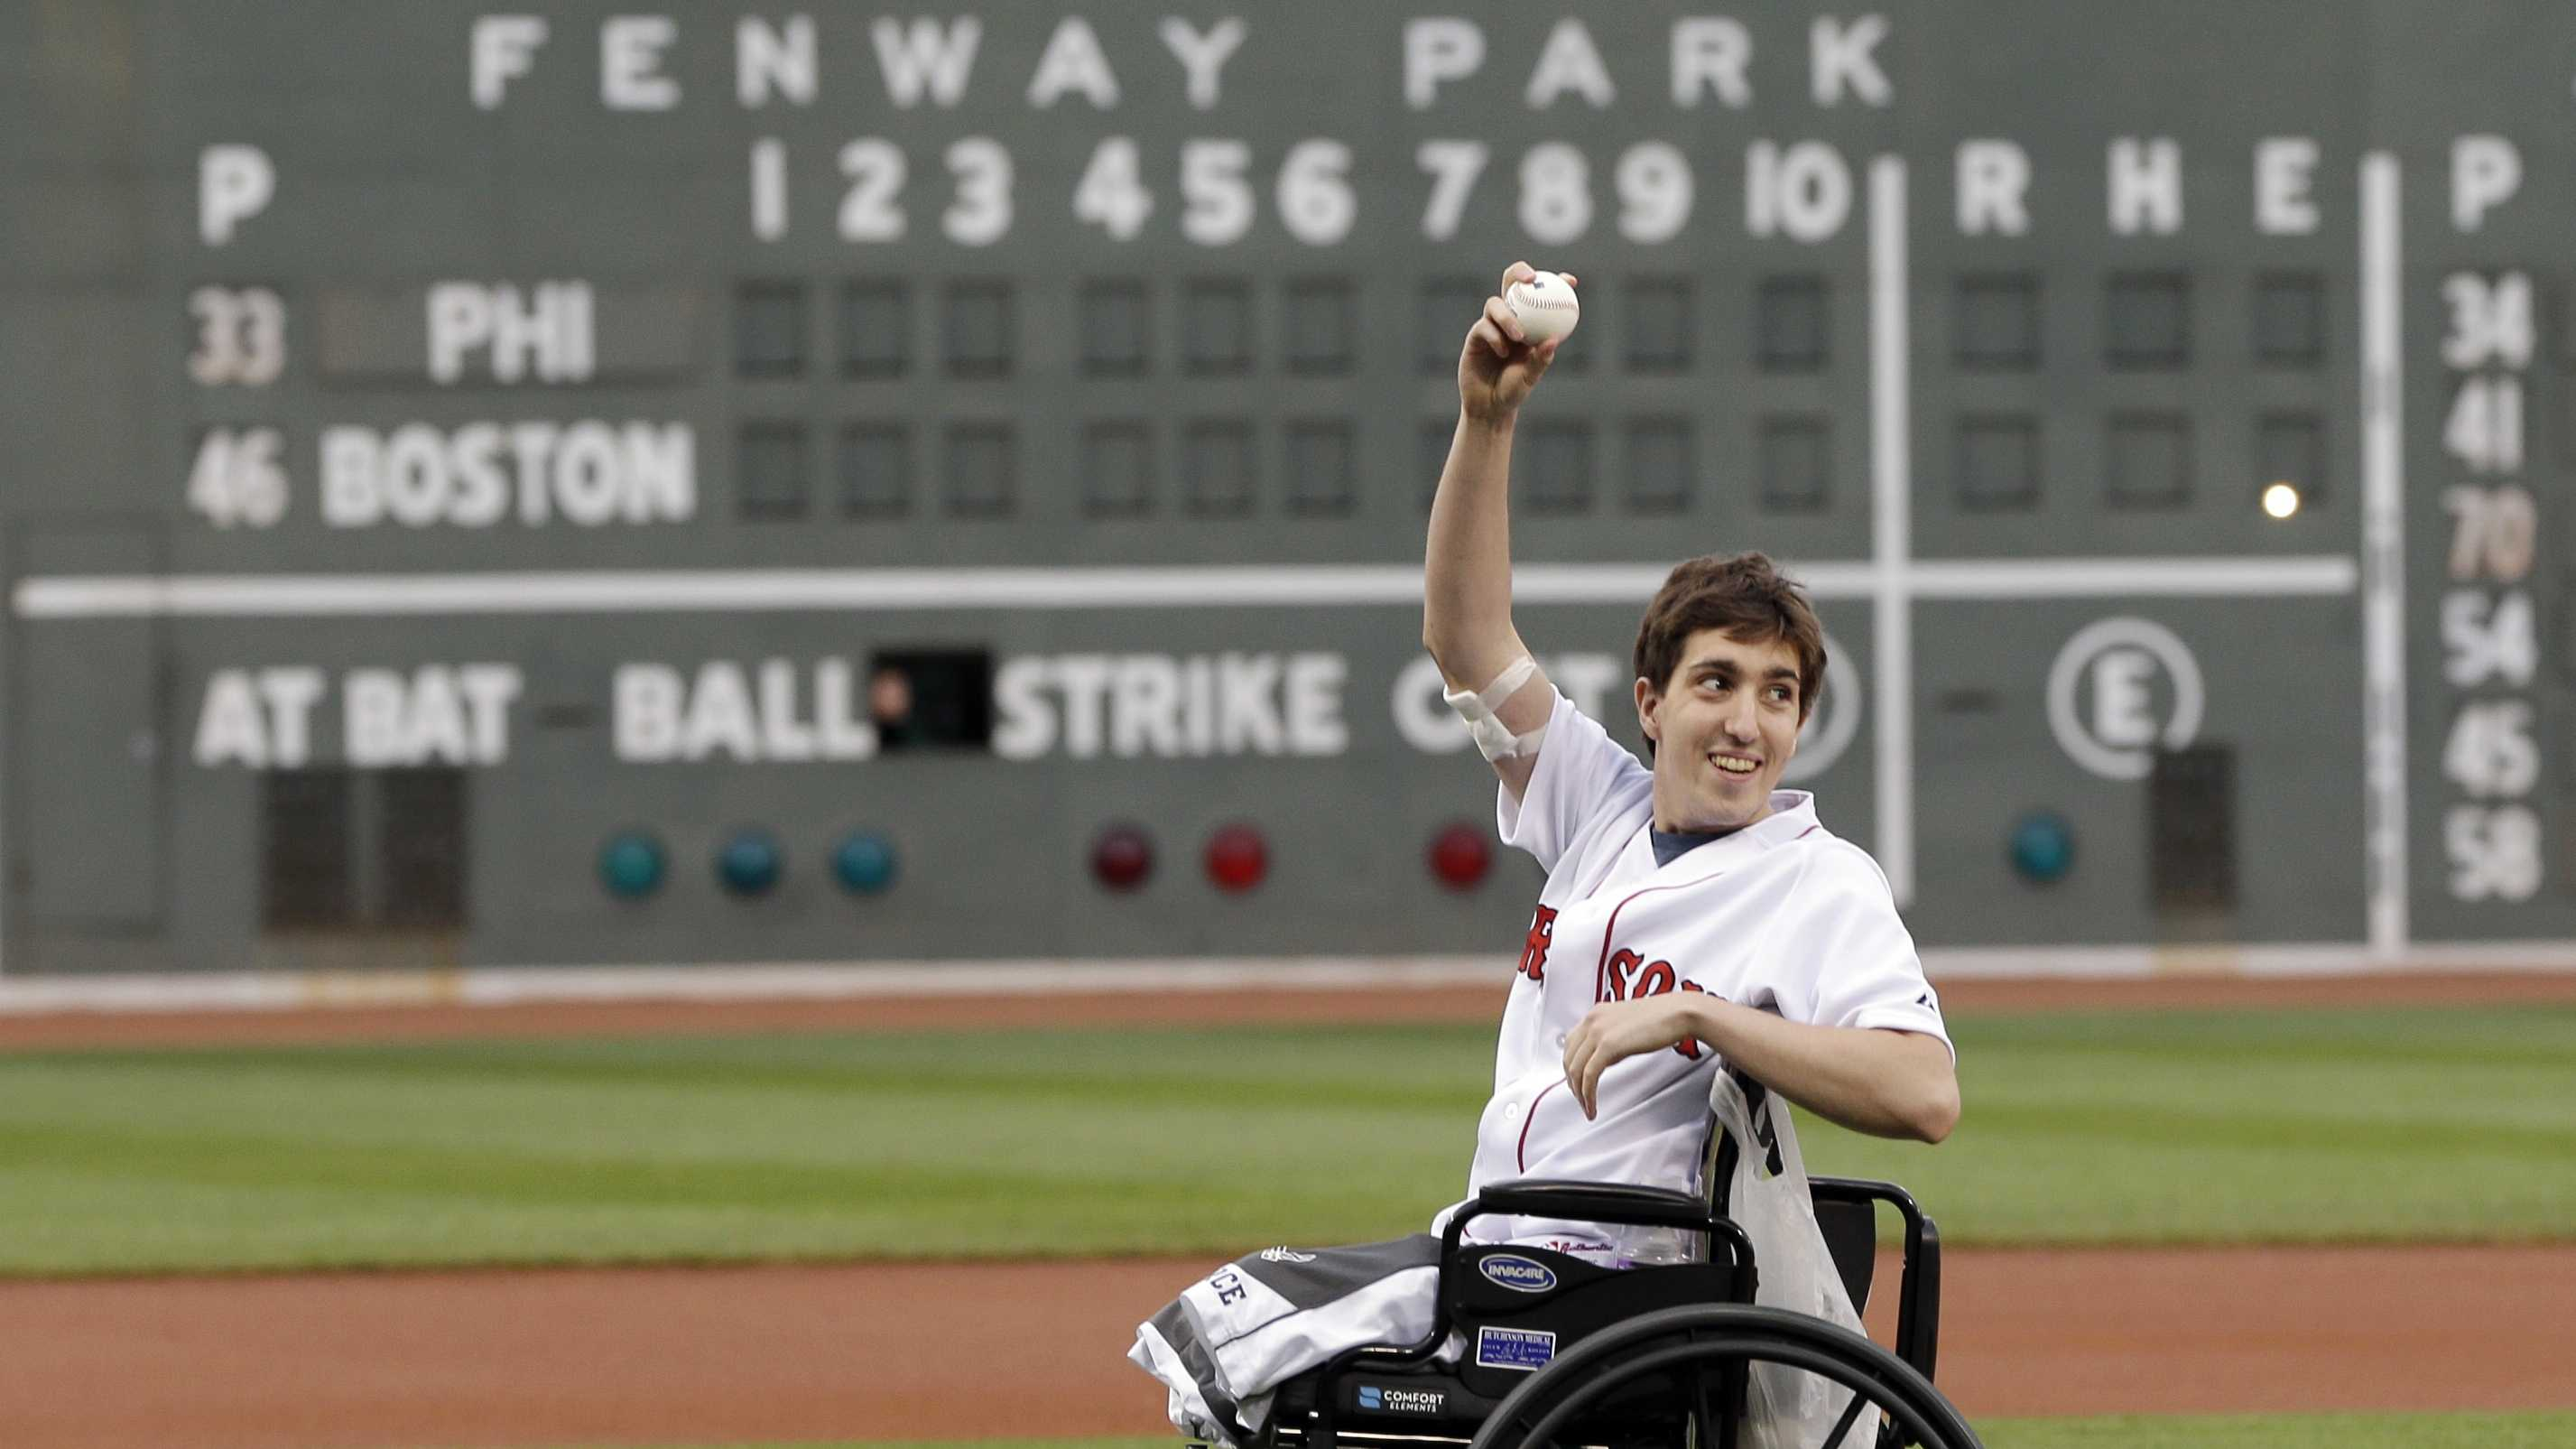 Boston Marathon bombing survivor Jeff Bauman acknowledges cheering fans before throwing out the ceremonial first pitch at Fenway Park prior to a baseball between the Boston Red Sox and the Philadelphia Phillies Tuesday, May 28, 2013, in Boston.